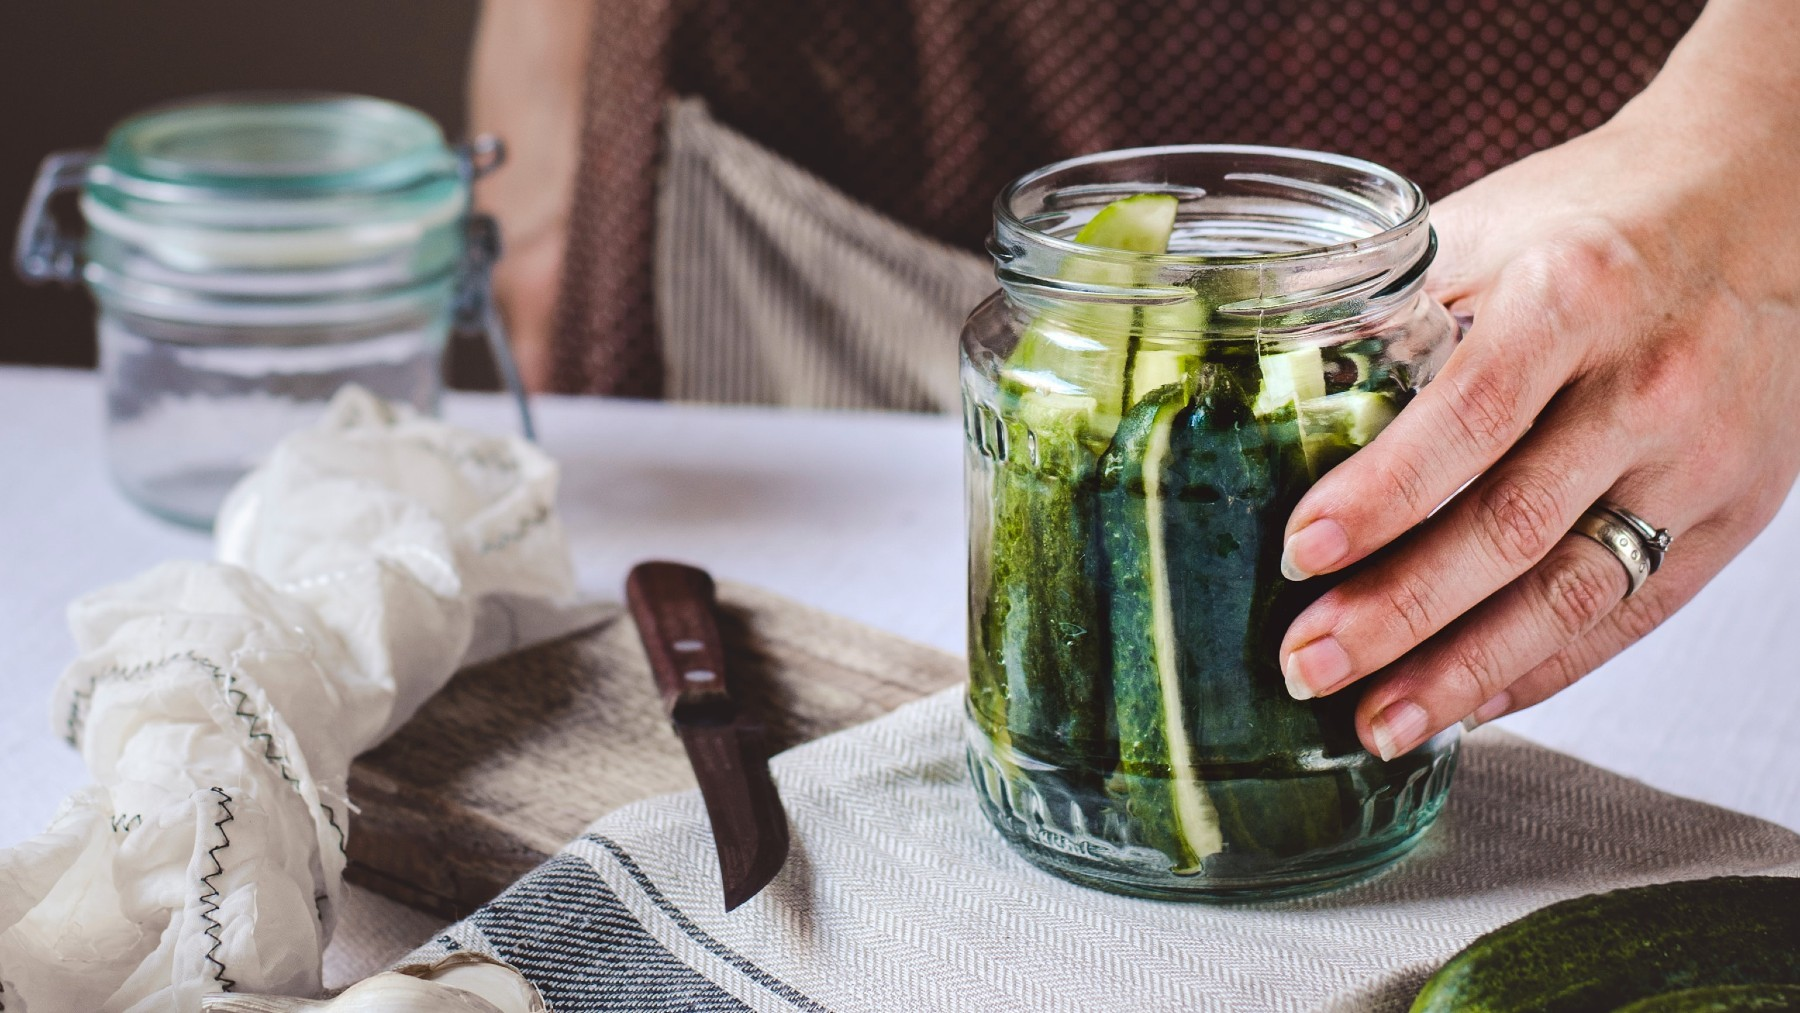 Close up of person making pickles in a jar.